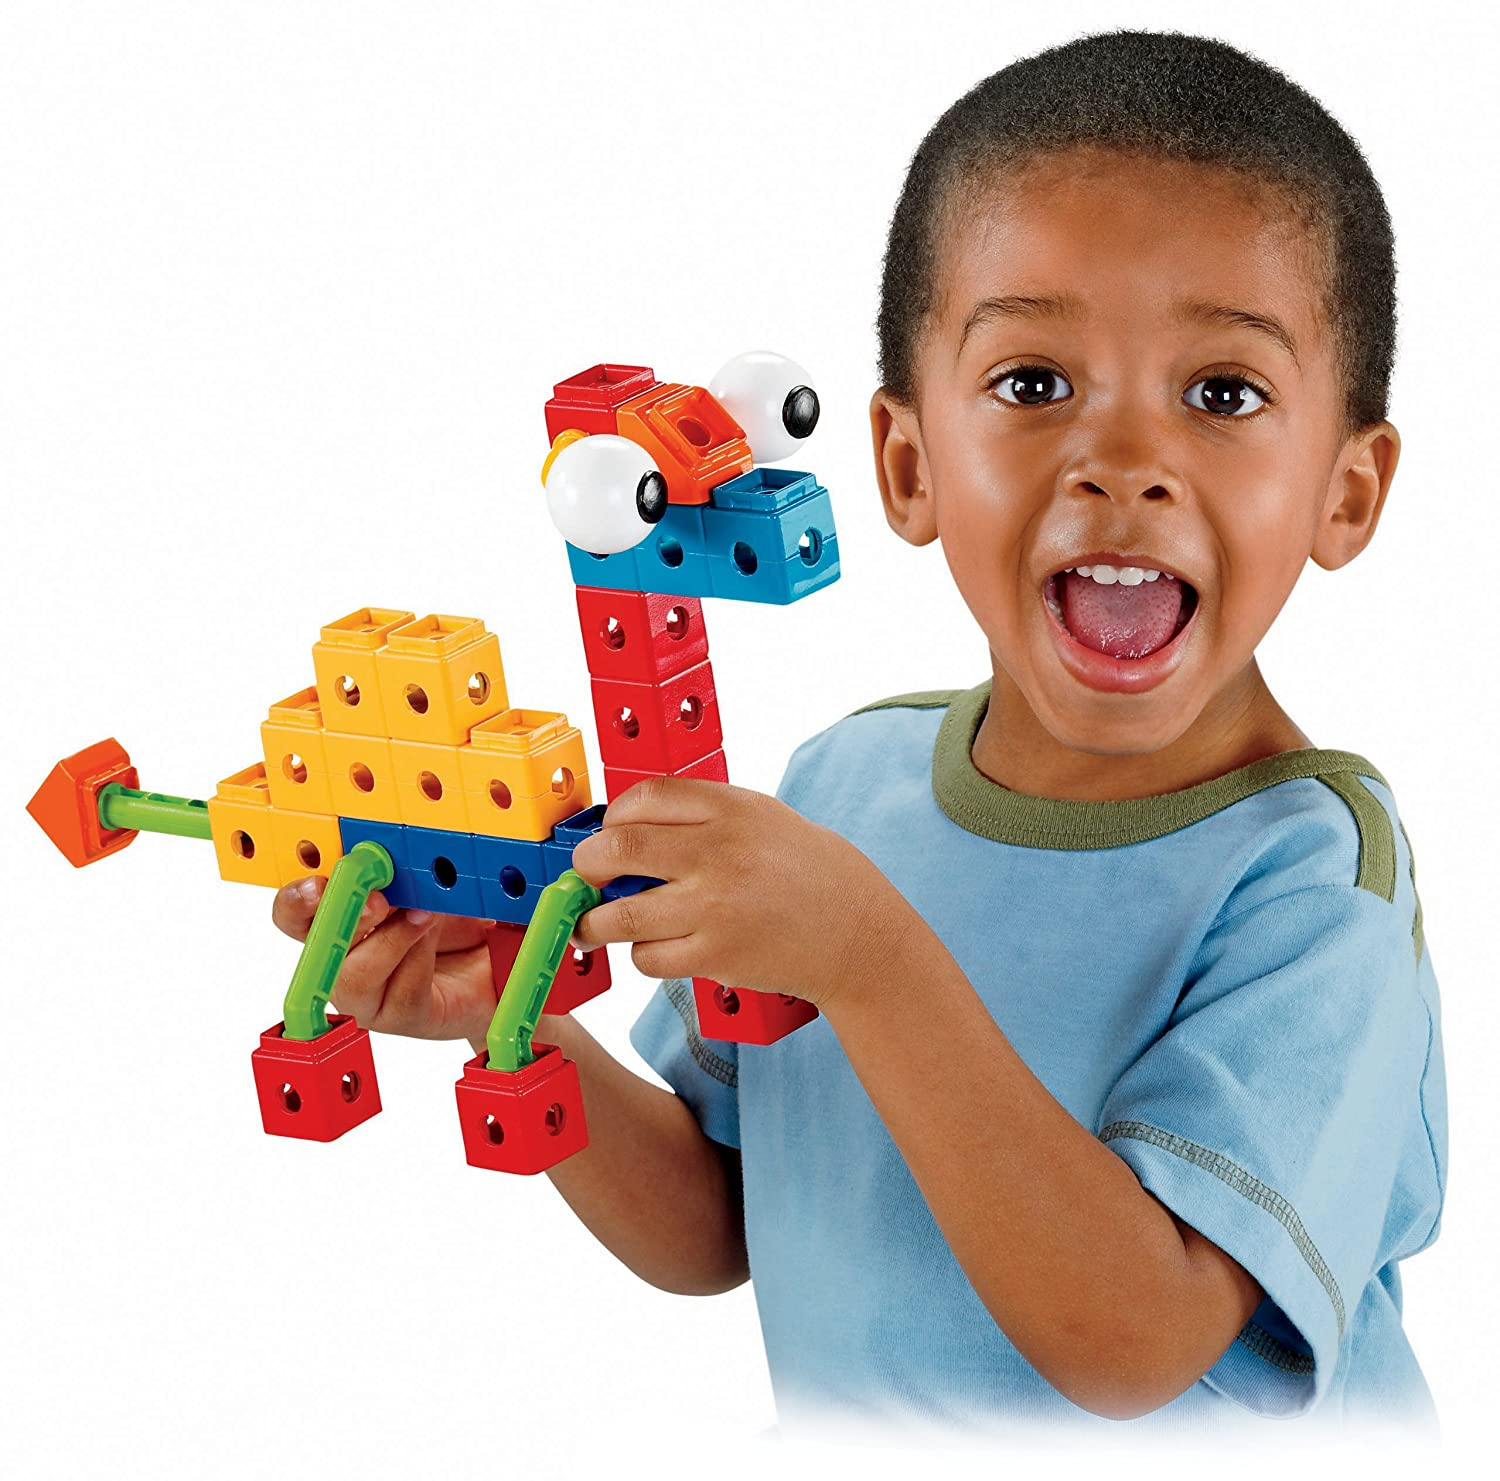 Trio Building Set Amazon Toys & Games